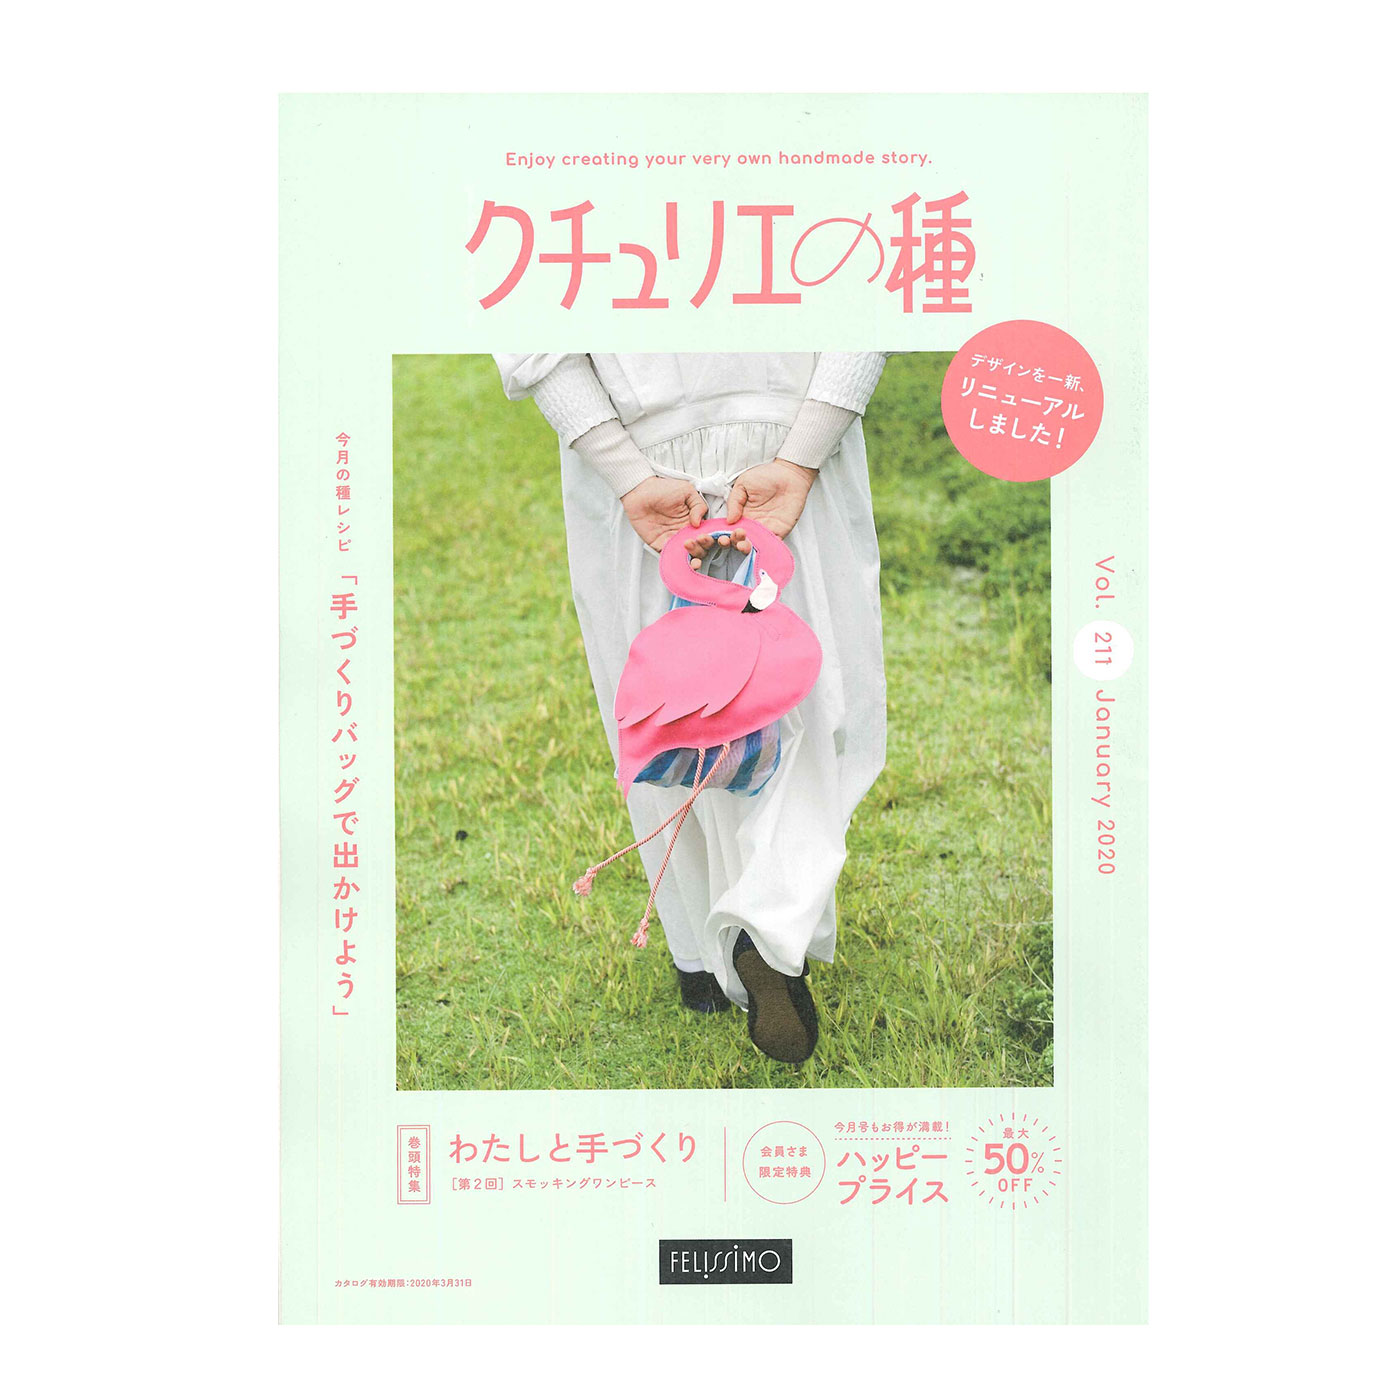 Couturier[クチュリエ]|「クチュリエクラブ」登録会費(年間登録)|クチュリエクラブ会員誌『クチュリエの種』